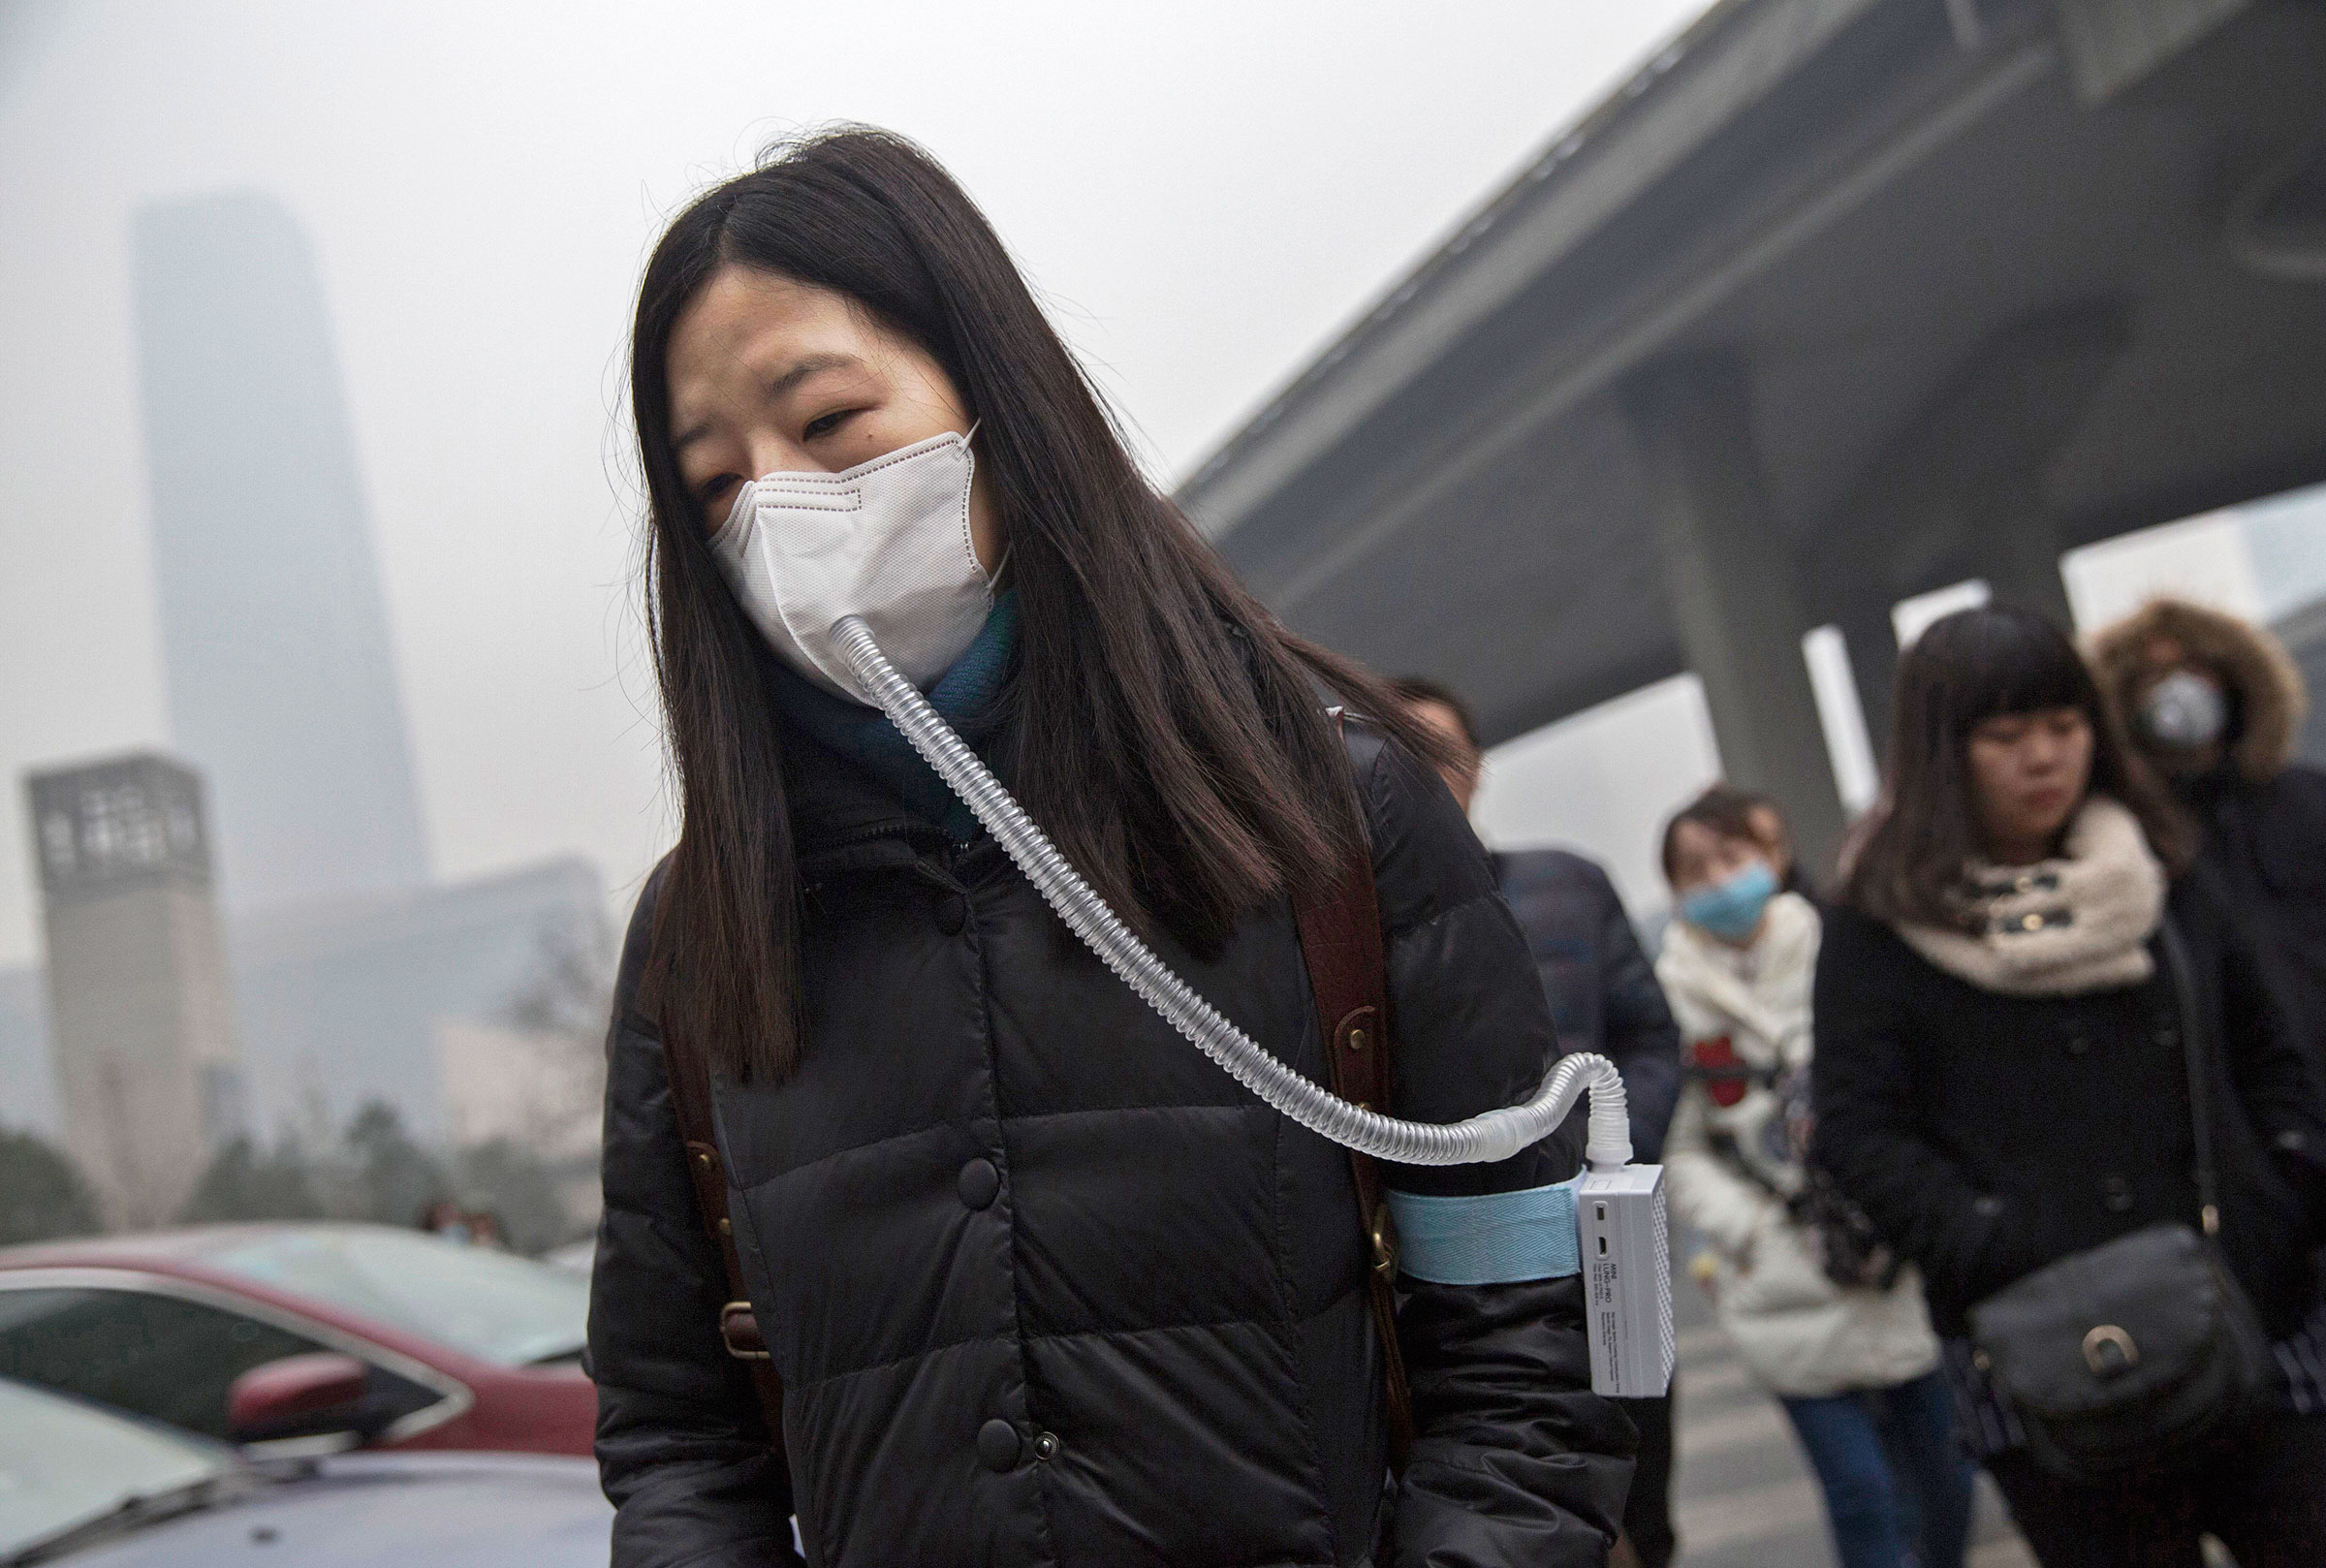 the problem with pollution in china About three-quarters (76%) of people in china say air pollution is a big problem, including 35% who regard it as a very big problem, according to our spring 2015 global survey about the same number of chinese (75%) say water pollution is a very or moderately big problem, and of 15 issues tested, both rank among the public's top concerns.